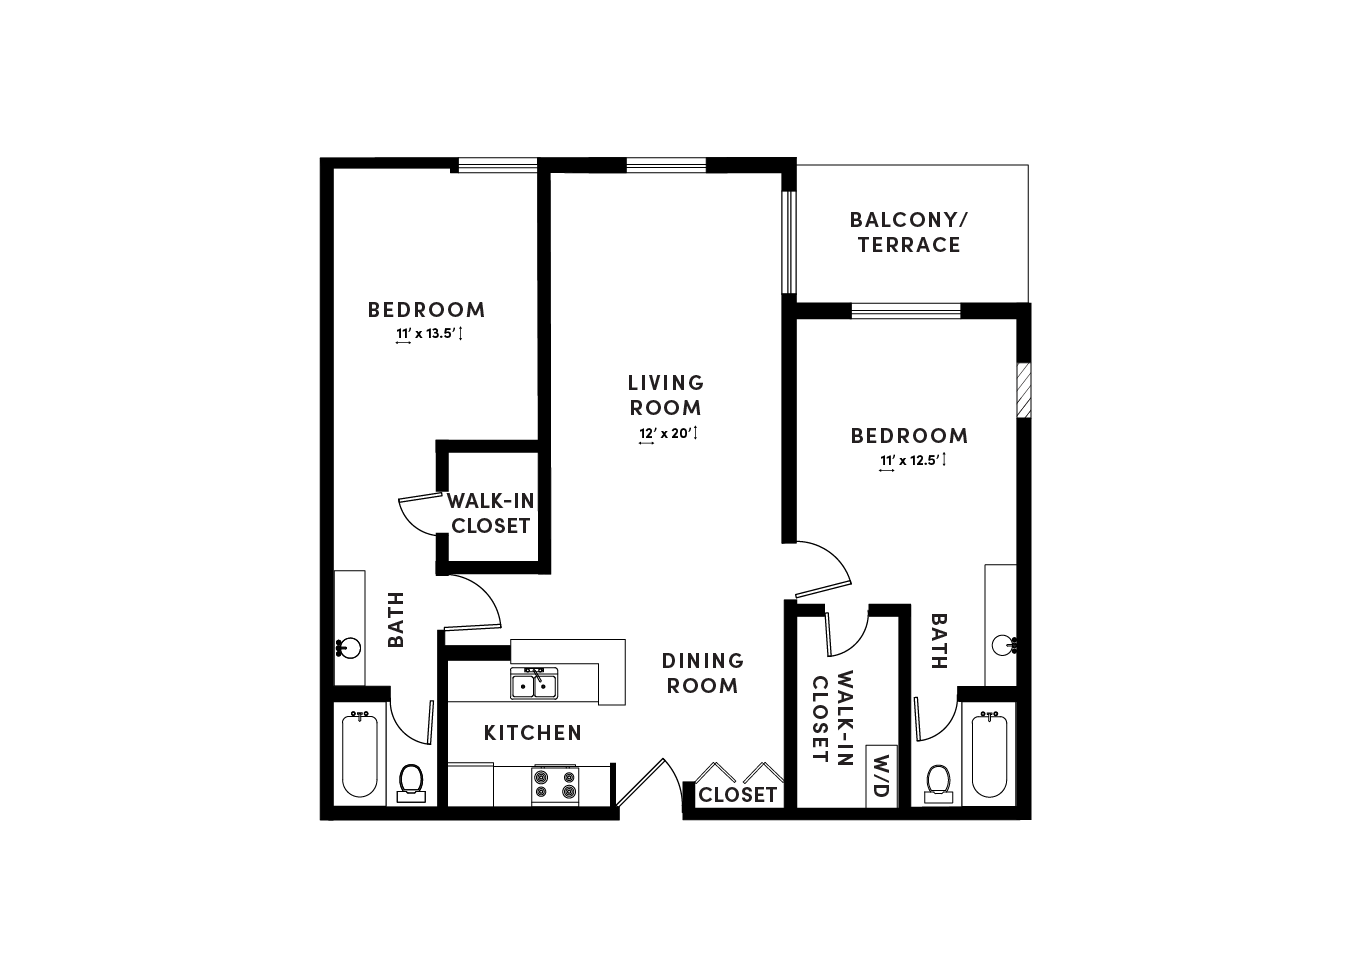 floor plan image of apartment_B204